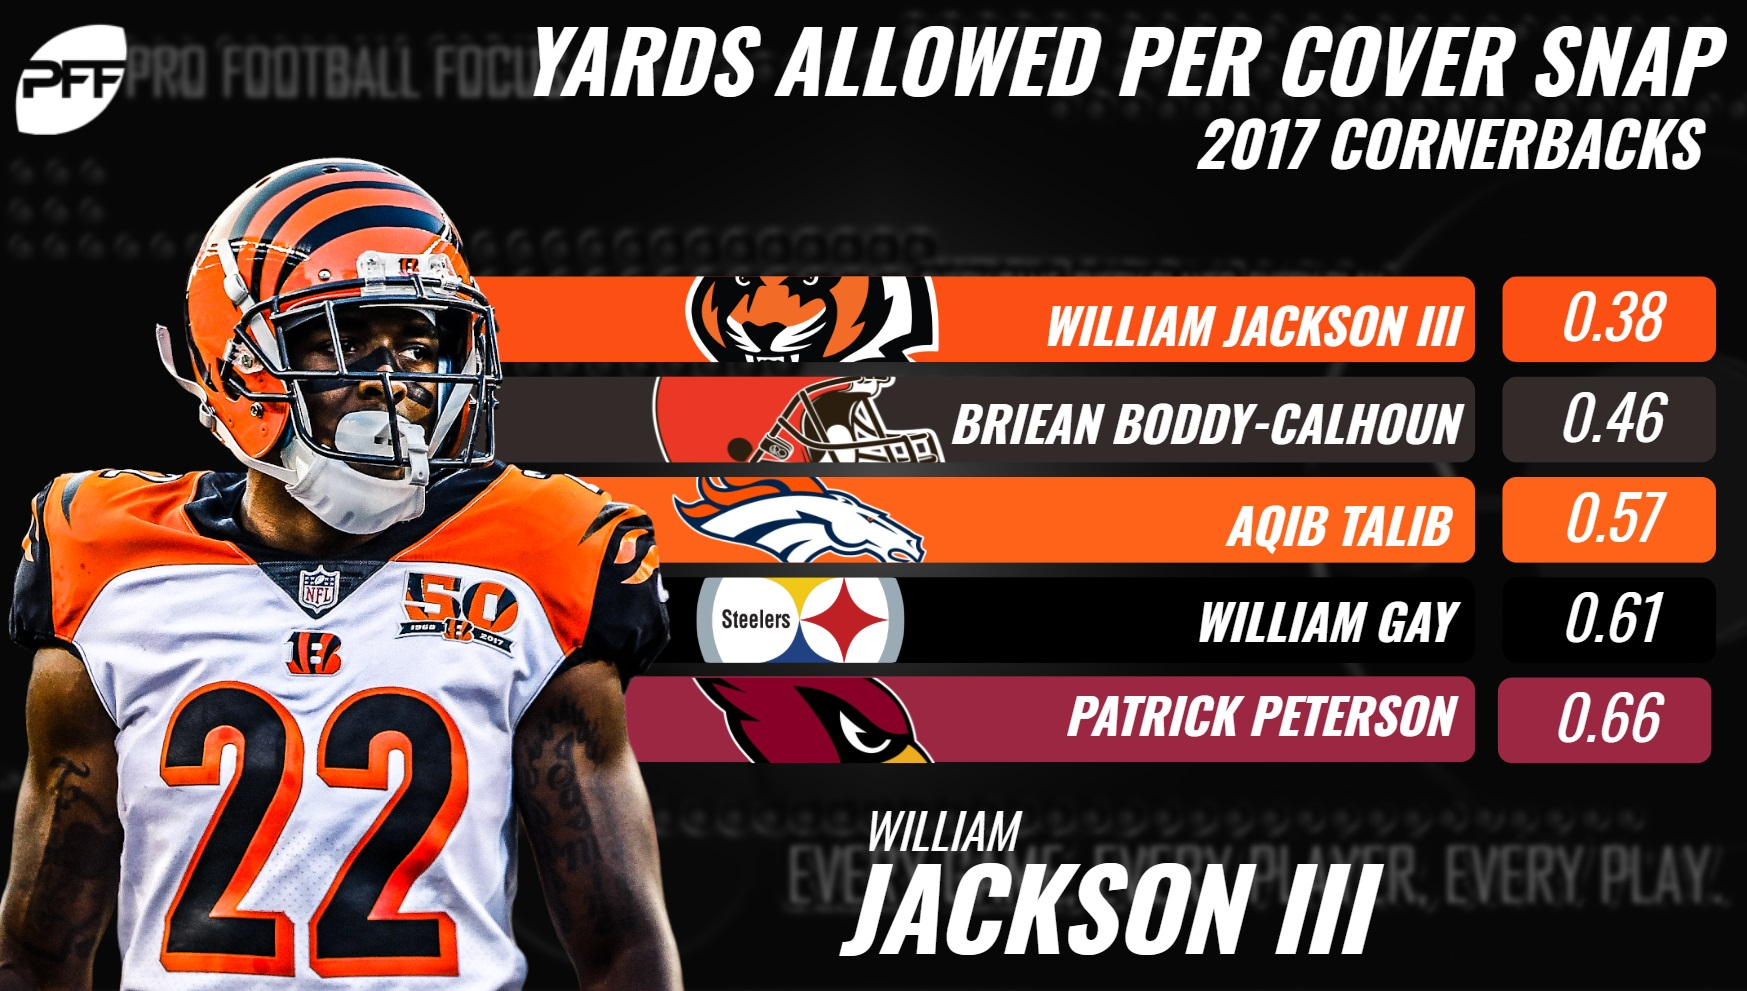 William Jackson Yards Per Cover Snap